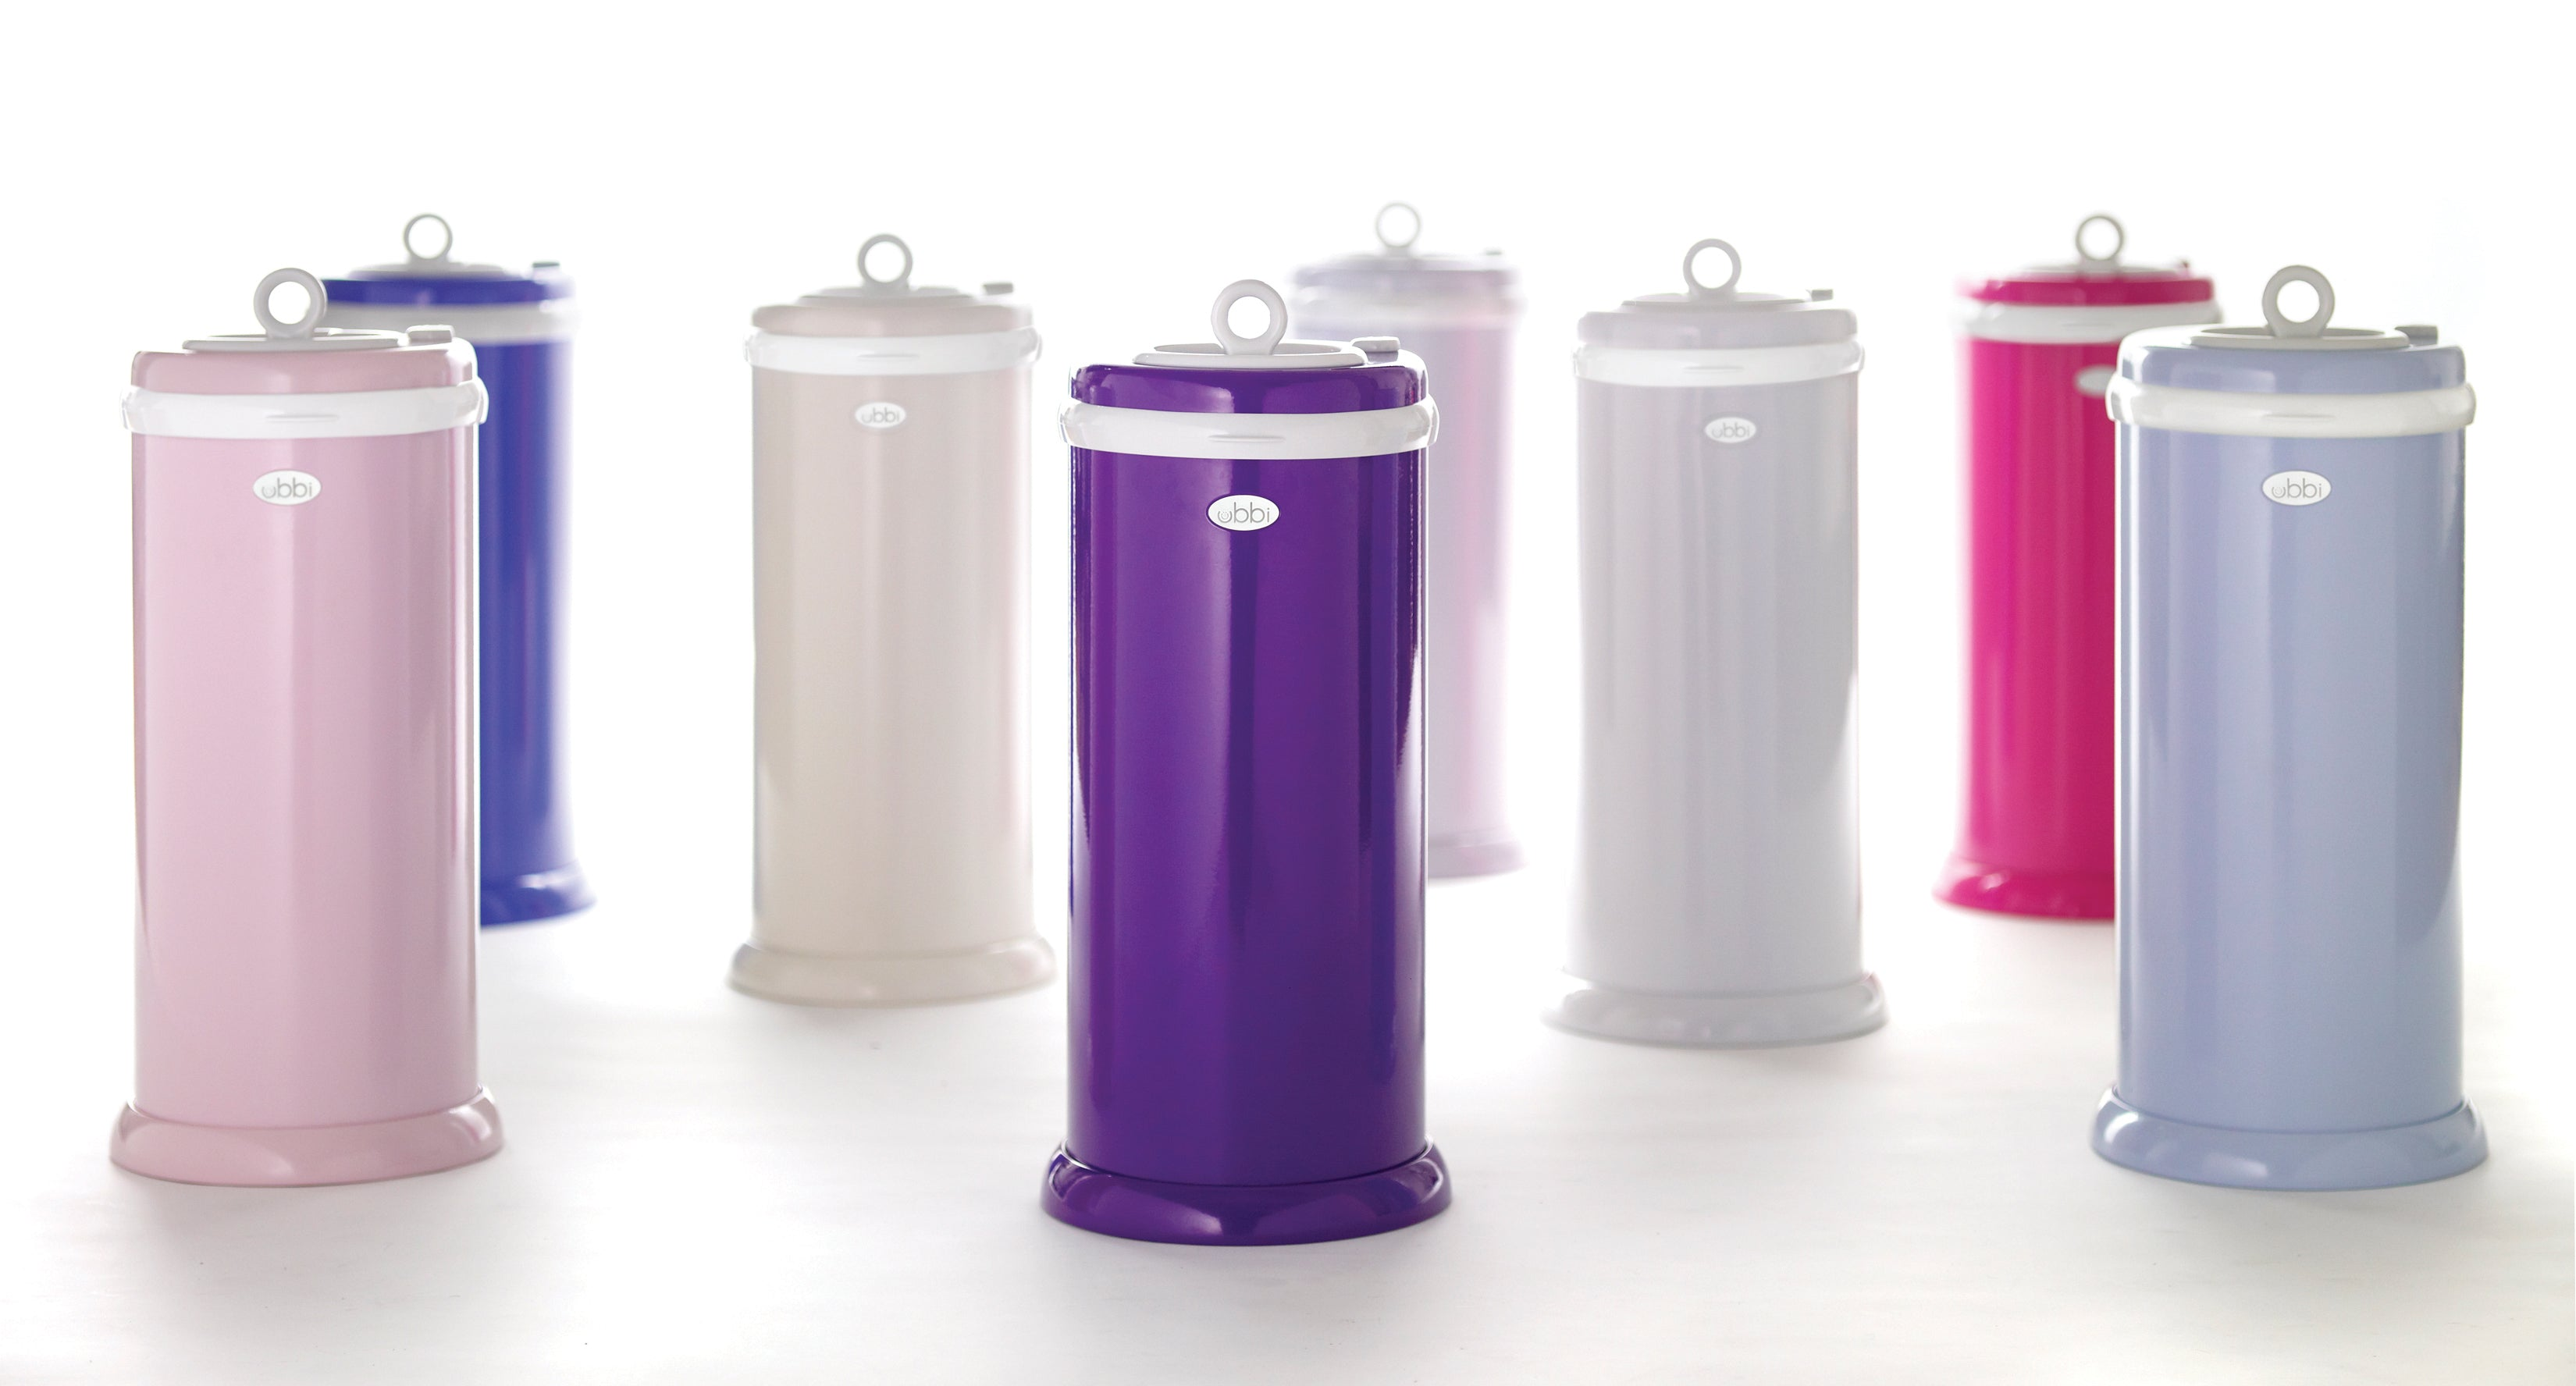 Babylist's 2018 Baby Registry Guide picks the Ubbi Diaper Pail as the All-Around Fave